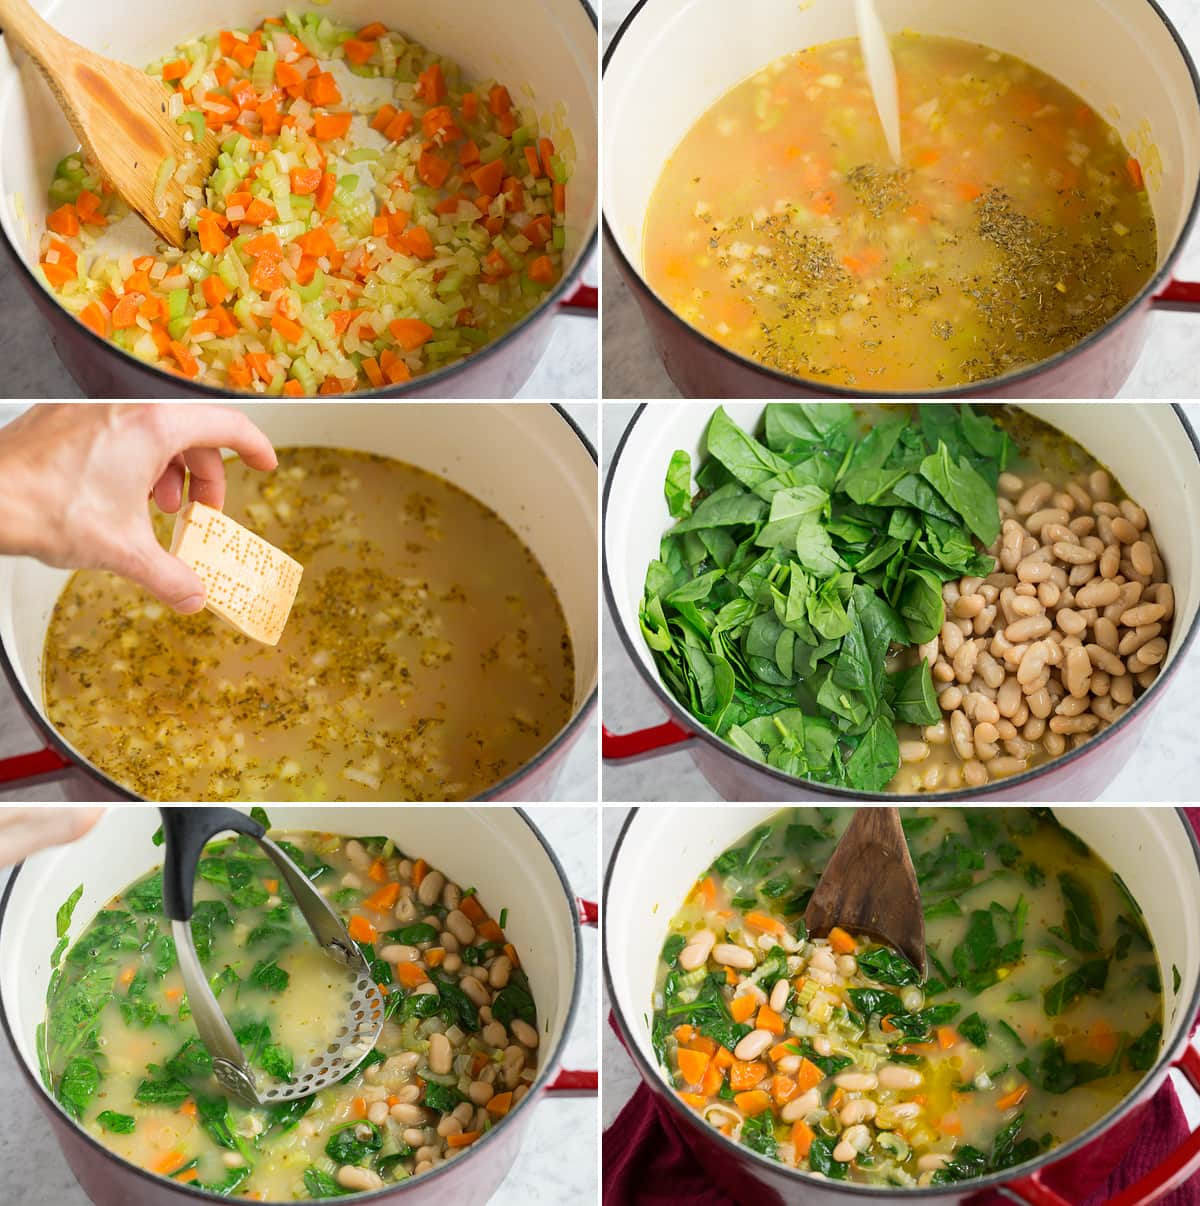 Collage image of steps showing how to make bean soup in a large pot.